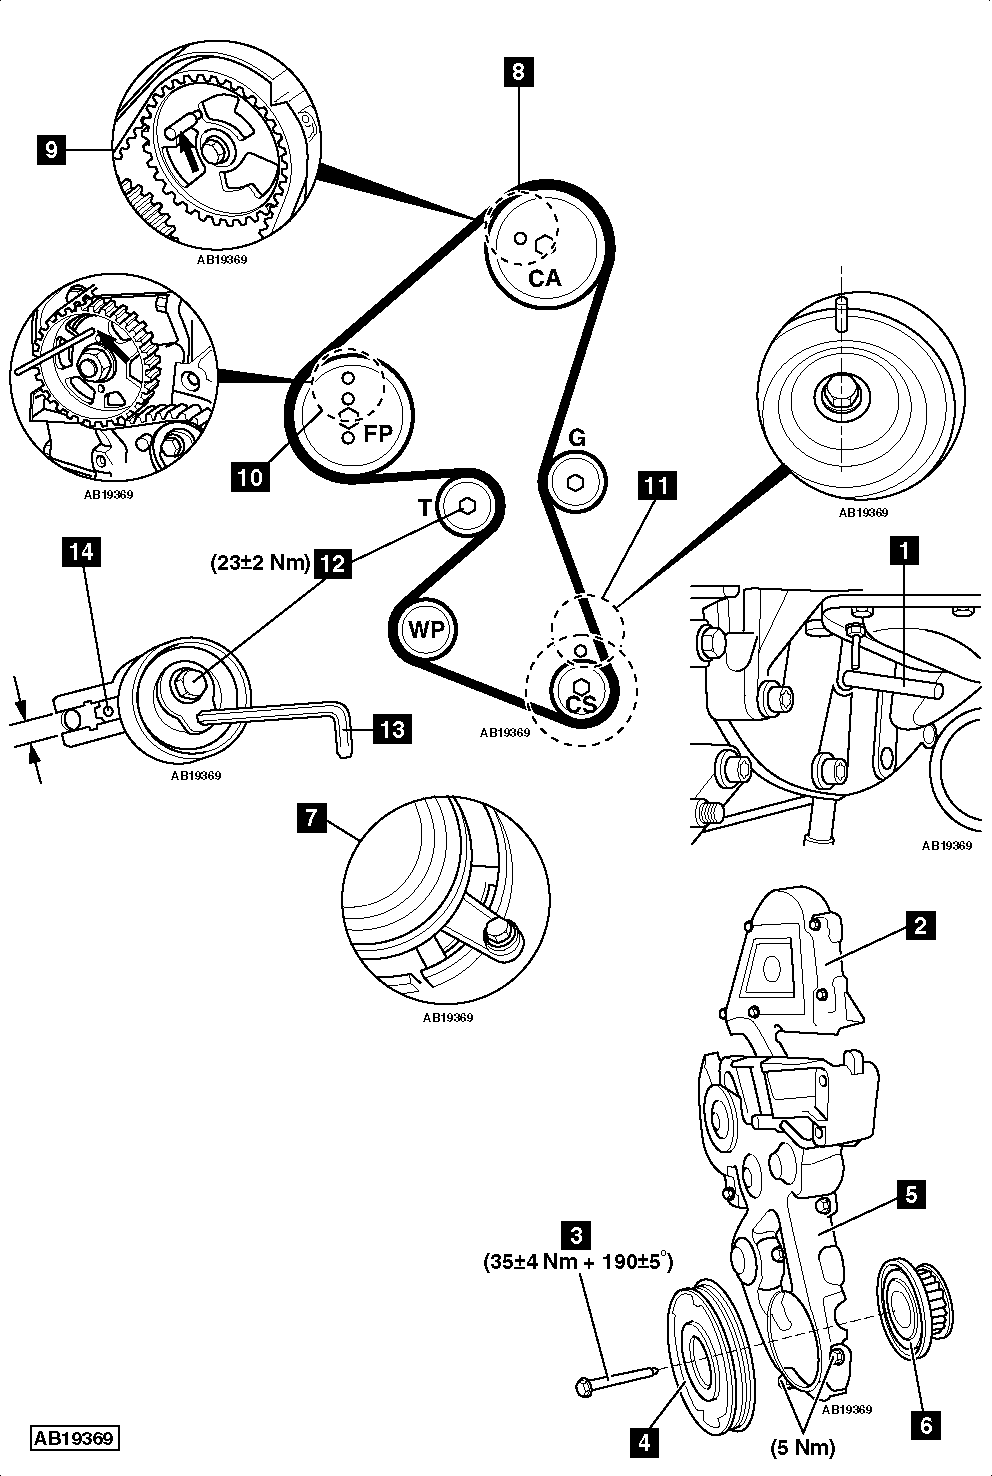 Berlingo Wiring Diagram on 2007 Ford Focus Stereo Wiring Diagram